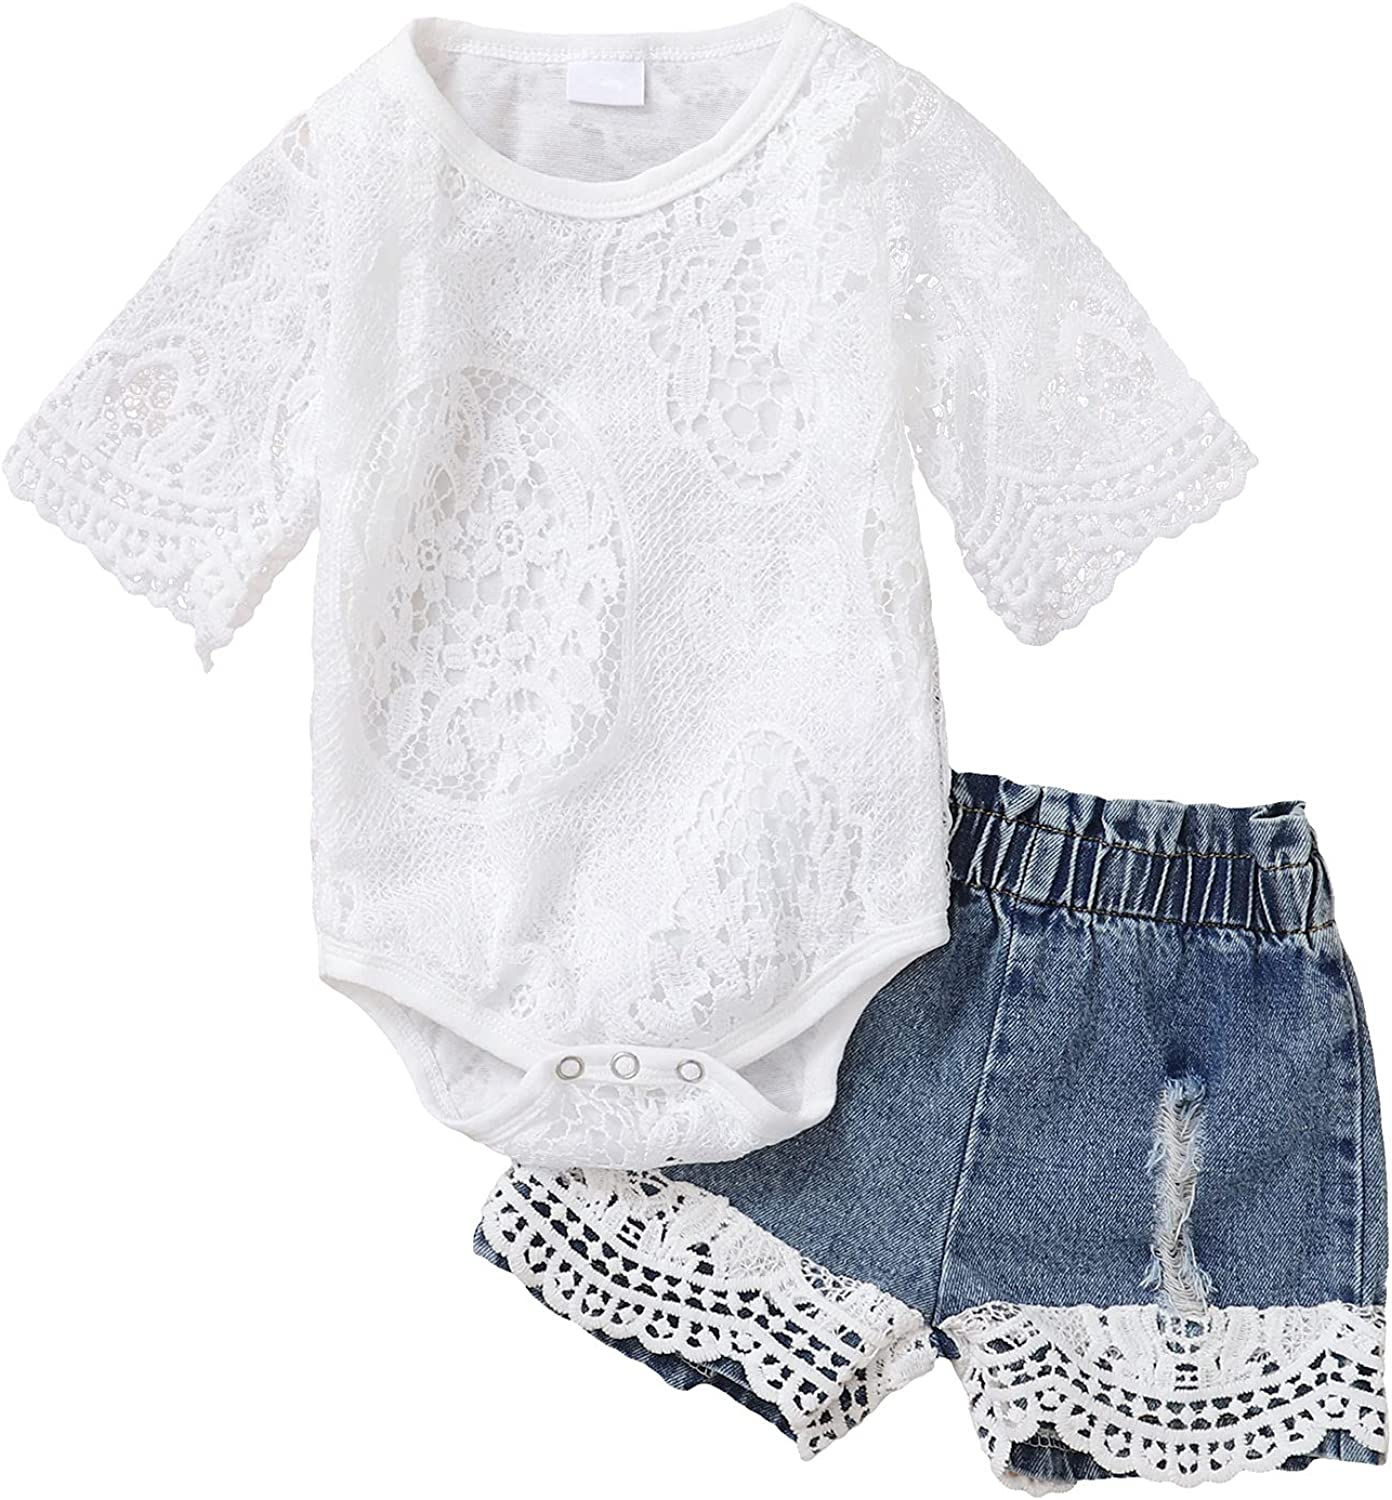 Newborn Baby Girl Clothes, Cute Infant Toddler Outfit, Lace Romper Top and Short Jeans Set